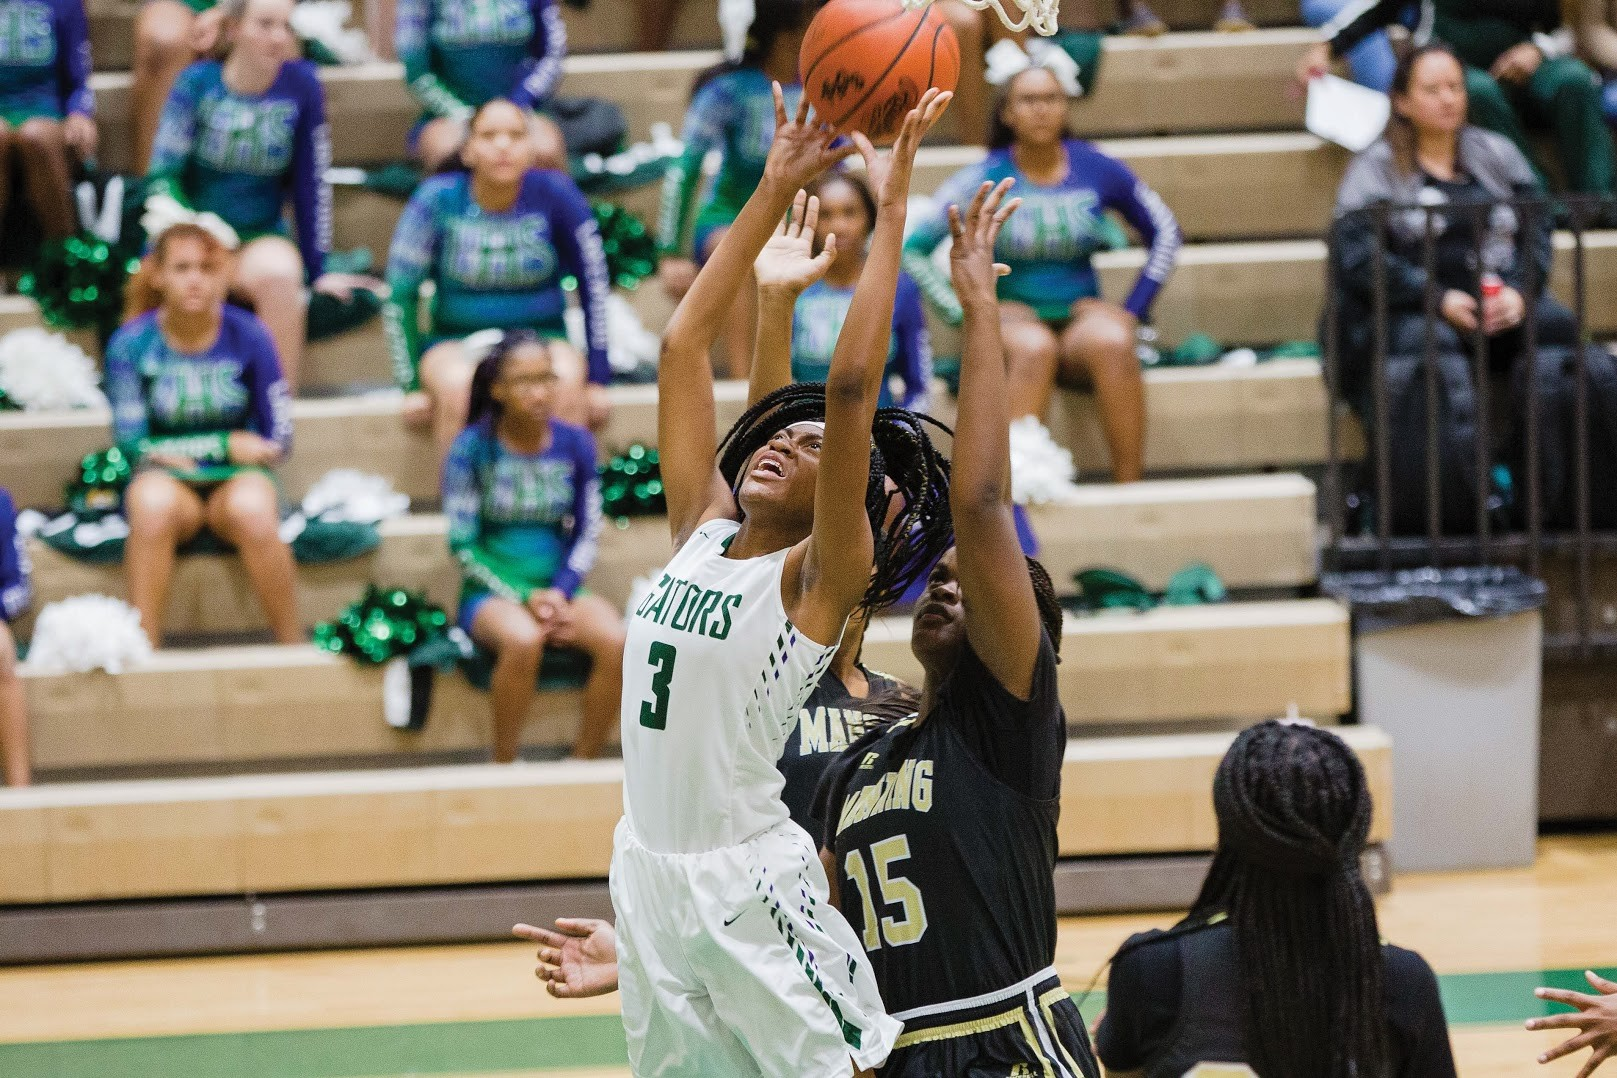 Lakewood's Zaria Stephens goes up for a rebound during the Gators' 39-38 loss to Manning on Tuesday at The Swamp.